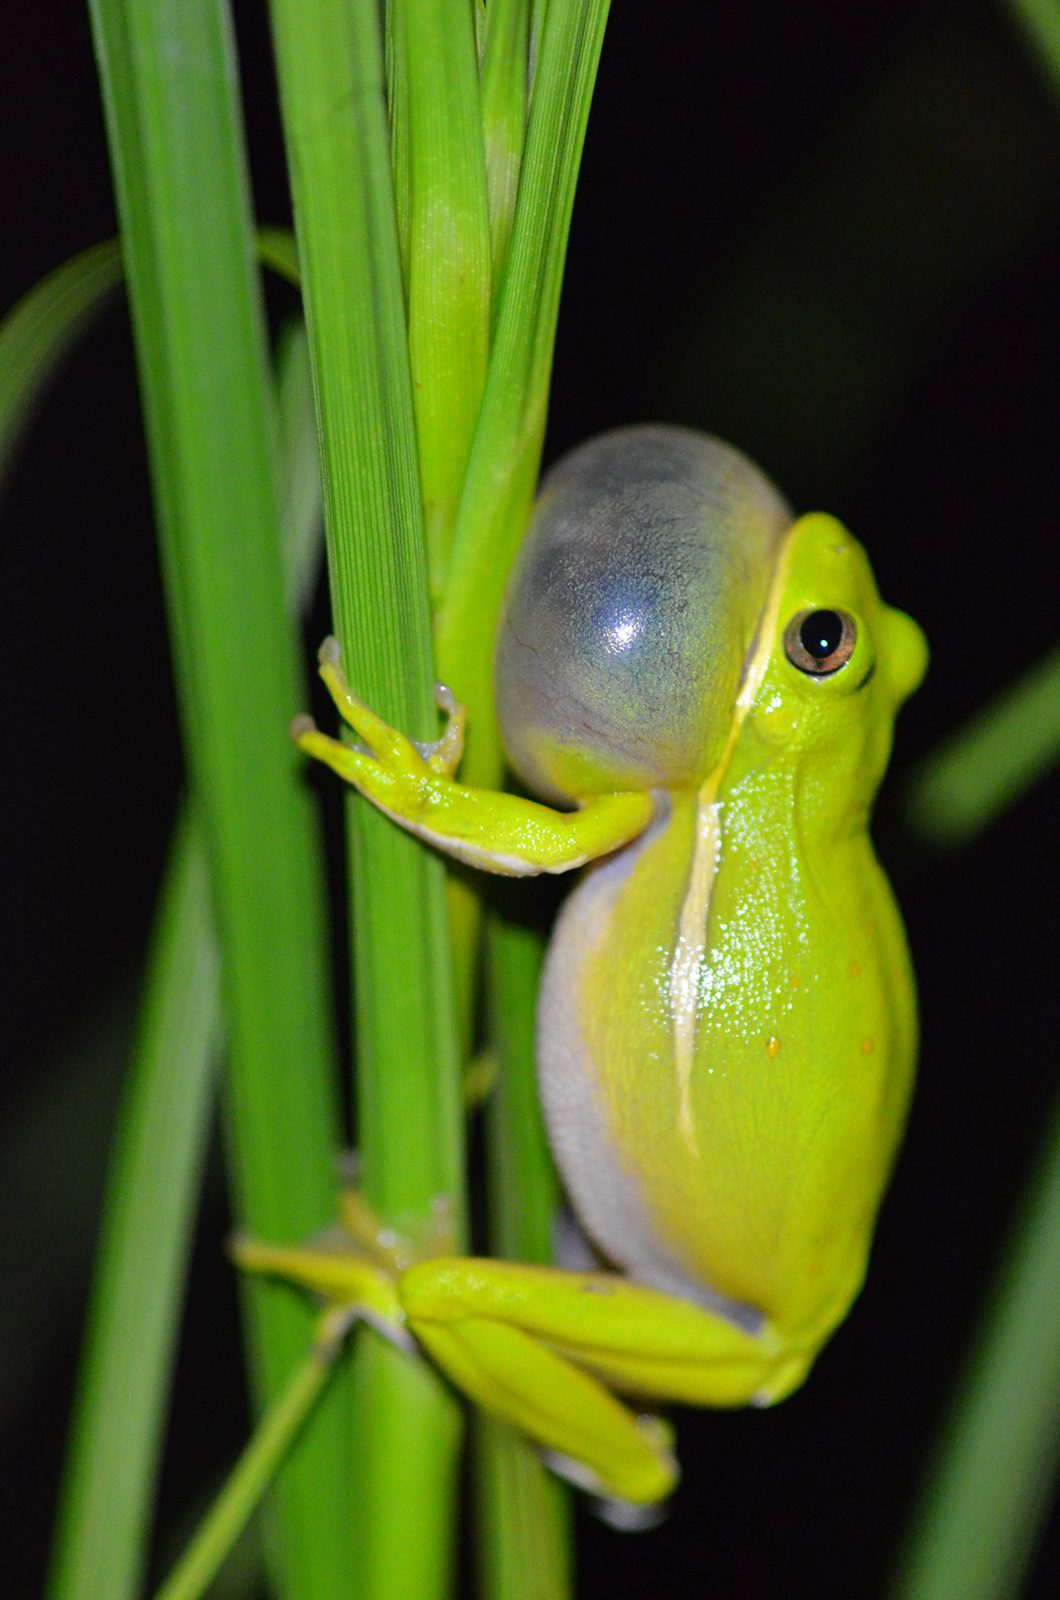 This Hyla cinerea (green treefrog) is shown calling. Photo provided by Lee.